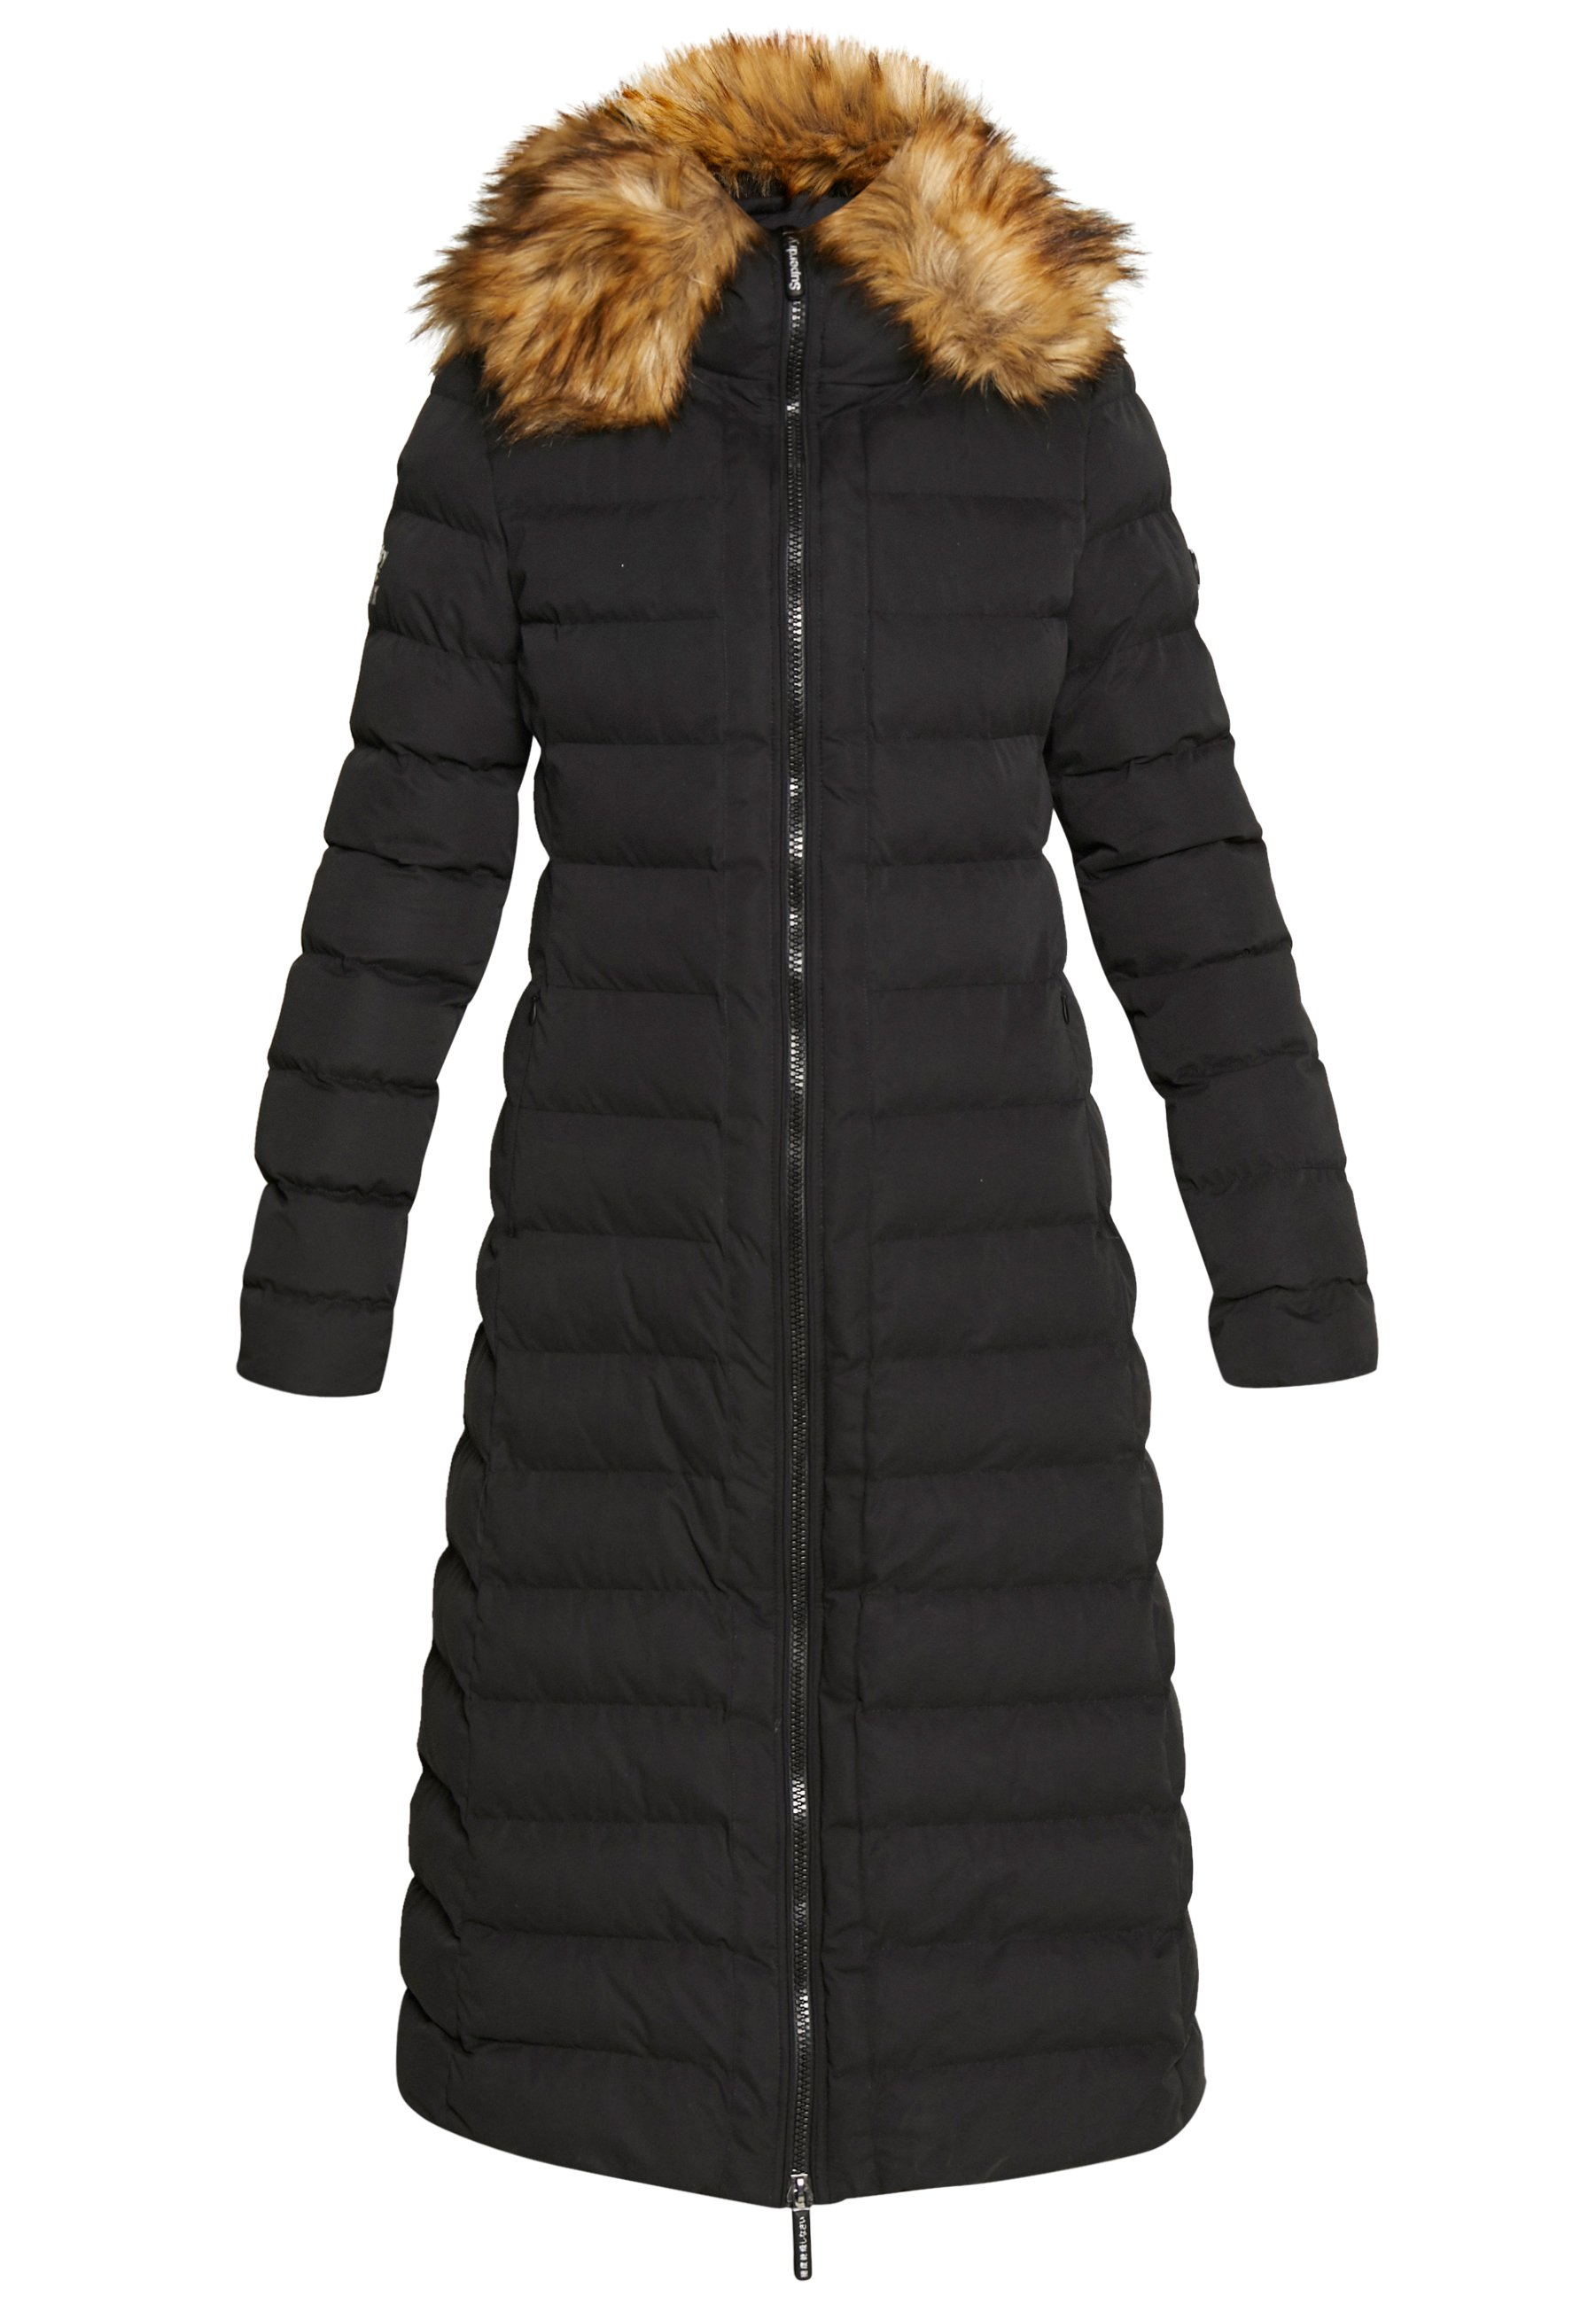 Superdry NEW ARCTIC LONG PUFFER Winterjas black Zalando.nl